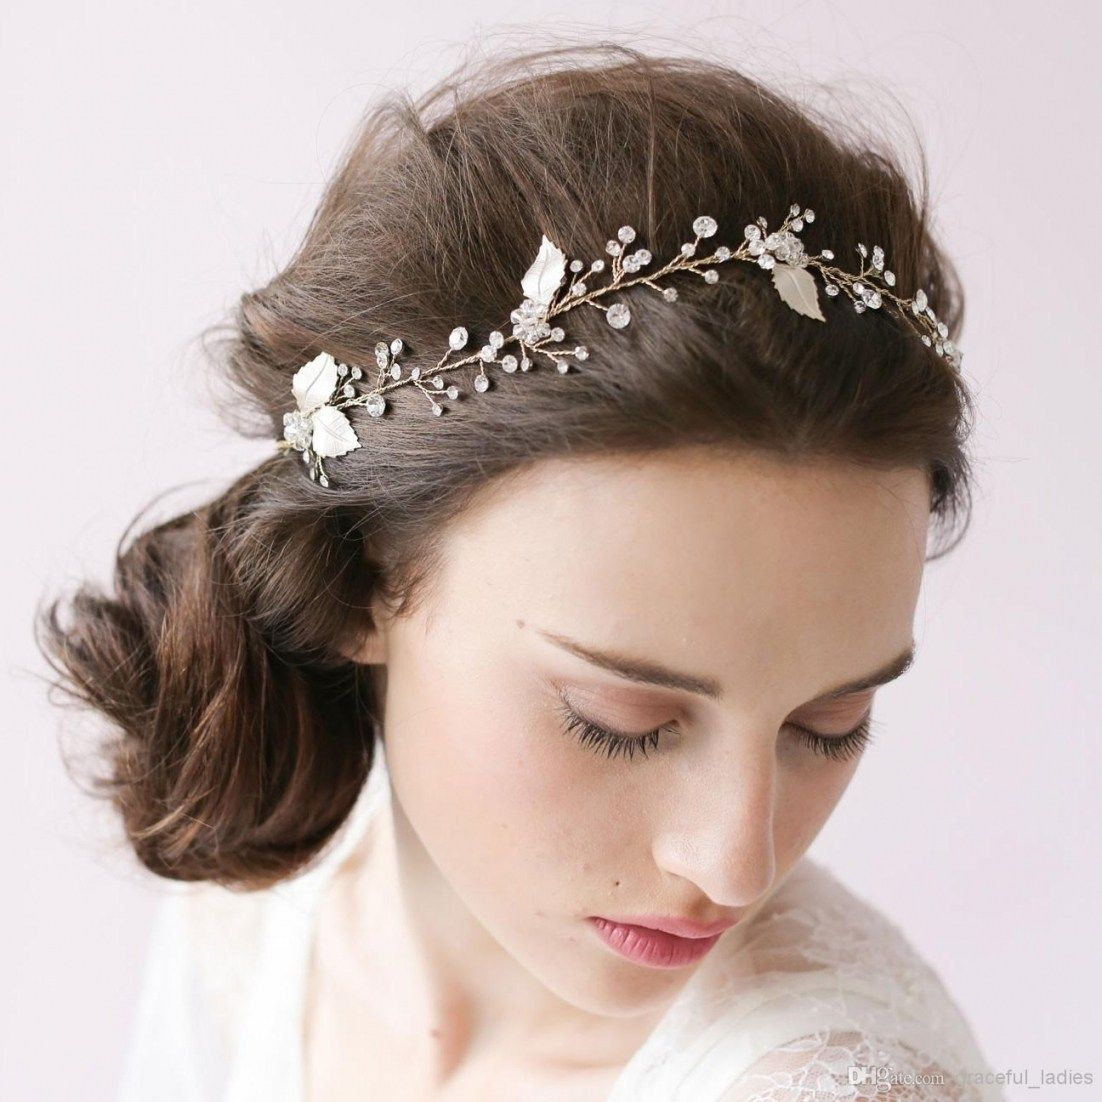 wedding hair accessories for the bride | hairstyles ideas for me